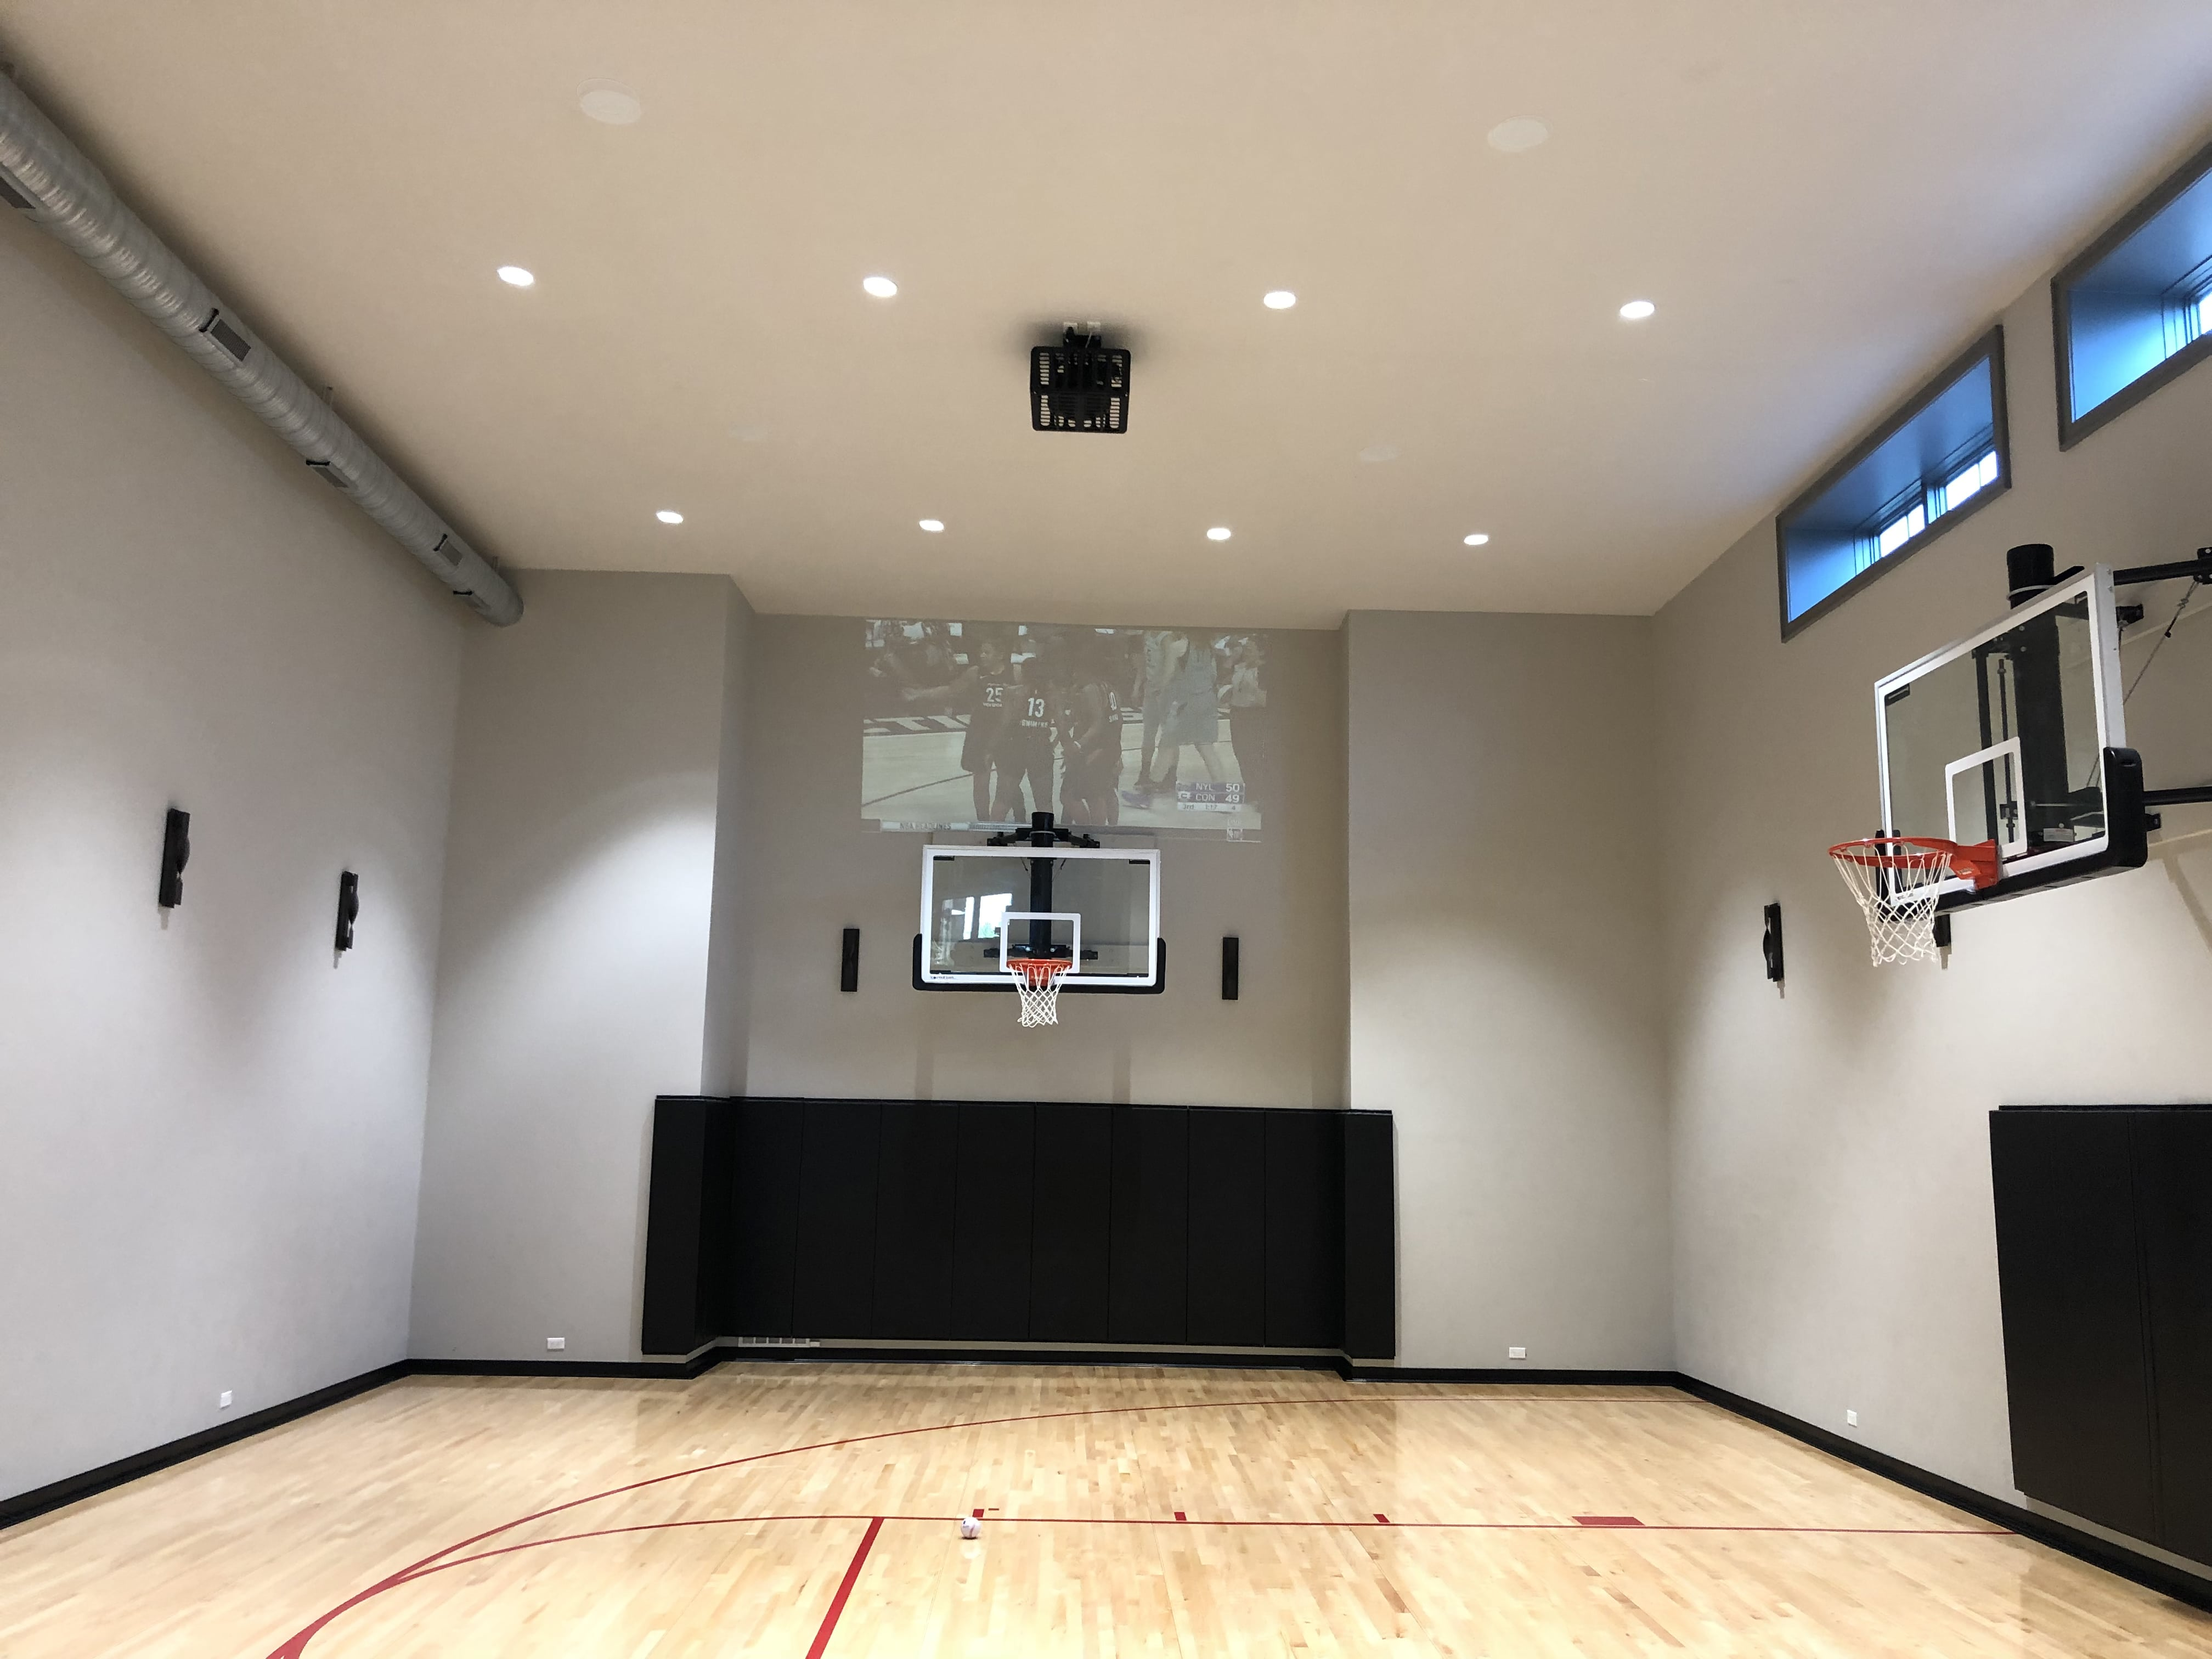 audio visual in basketball court